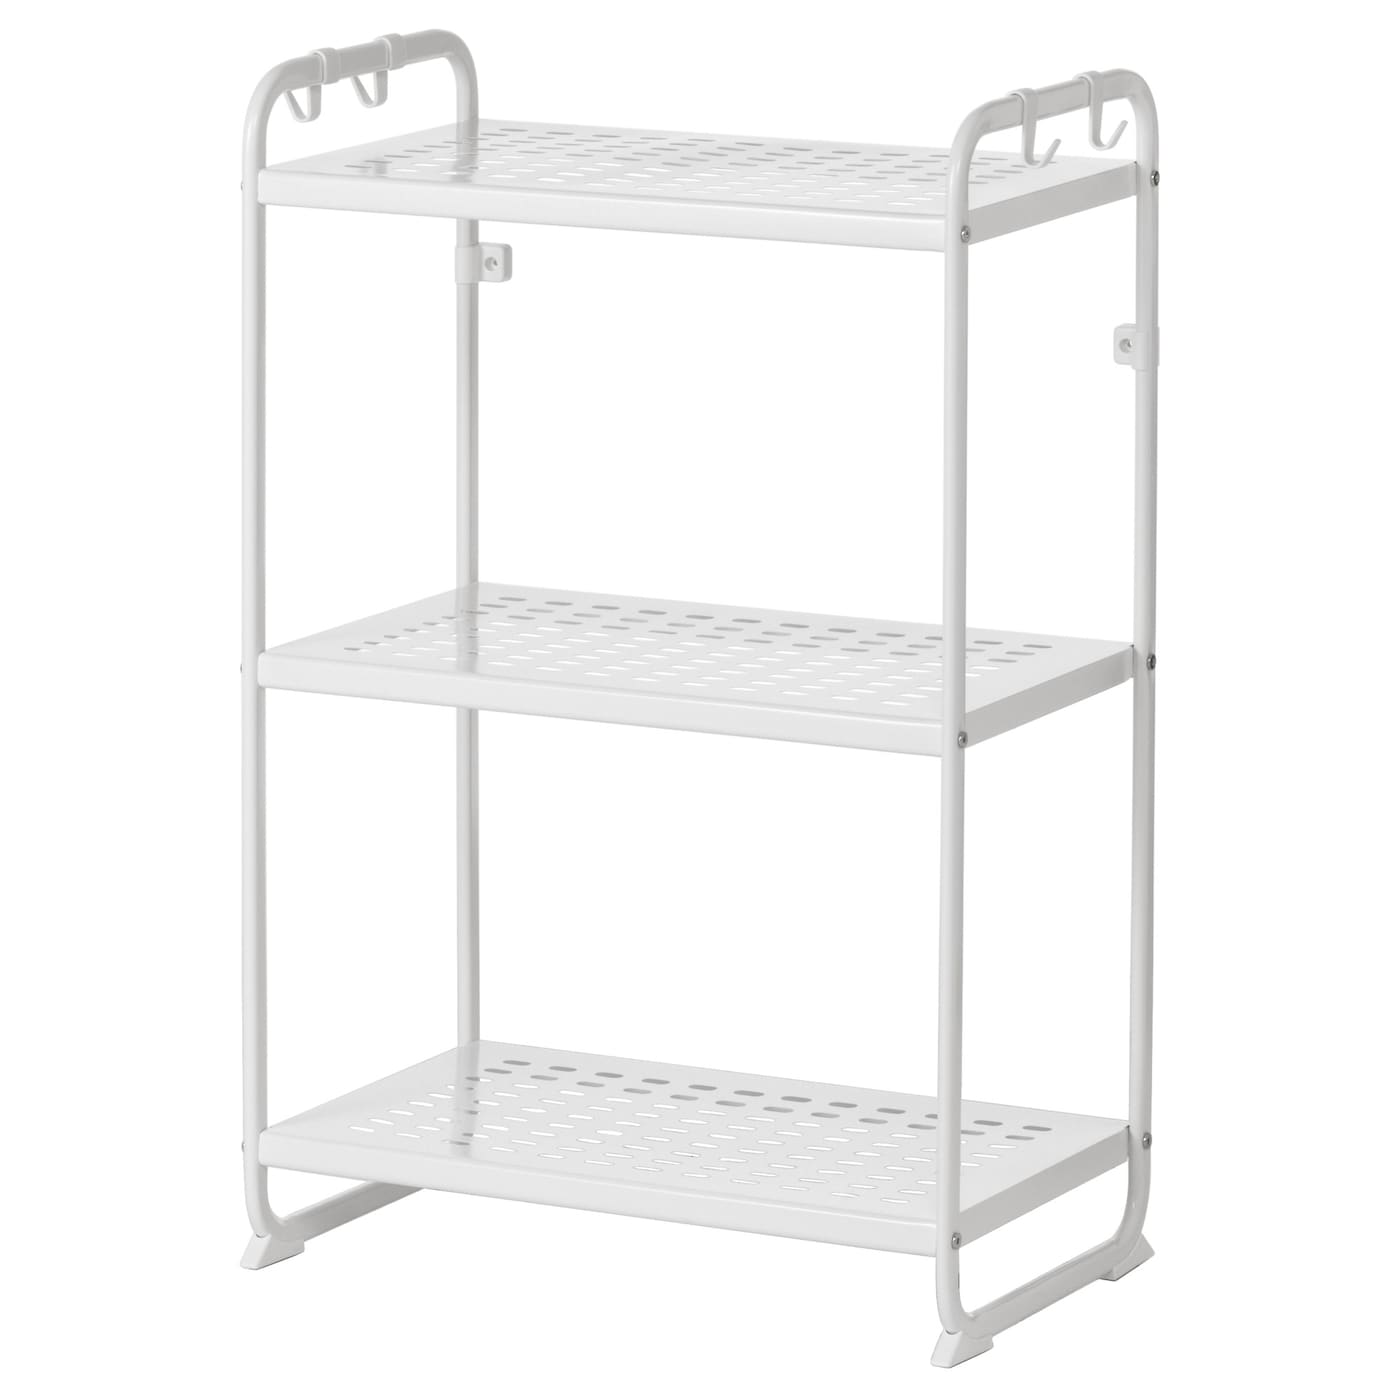 Ikea Mulig Shelving Unit Can Also Be Used In Bathrooms And Other Damp Areas Indoors